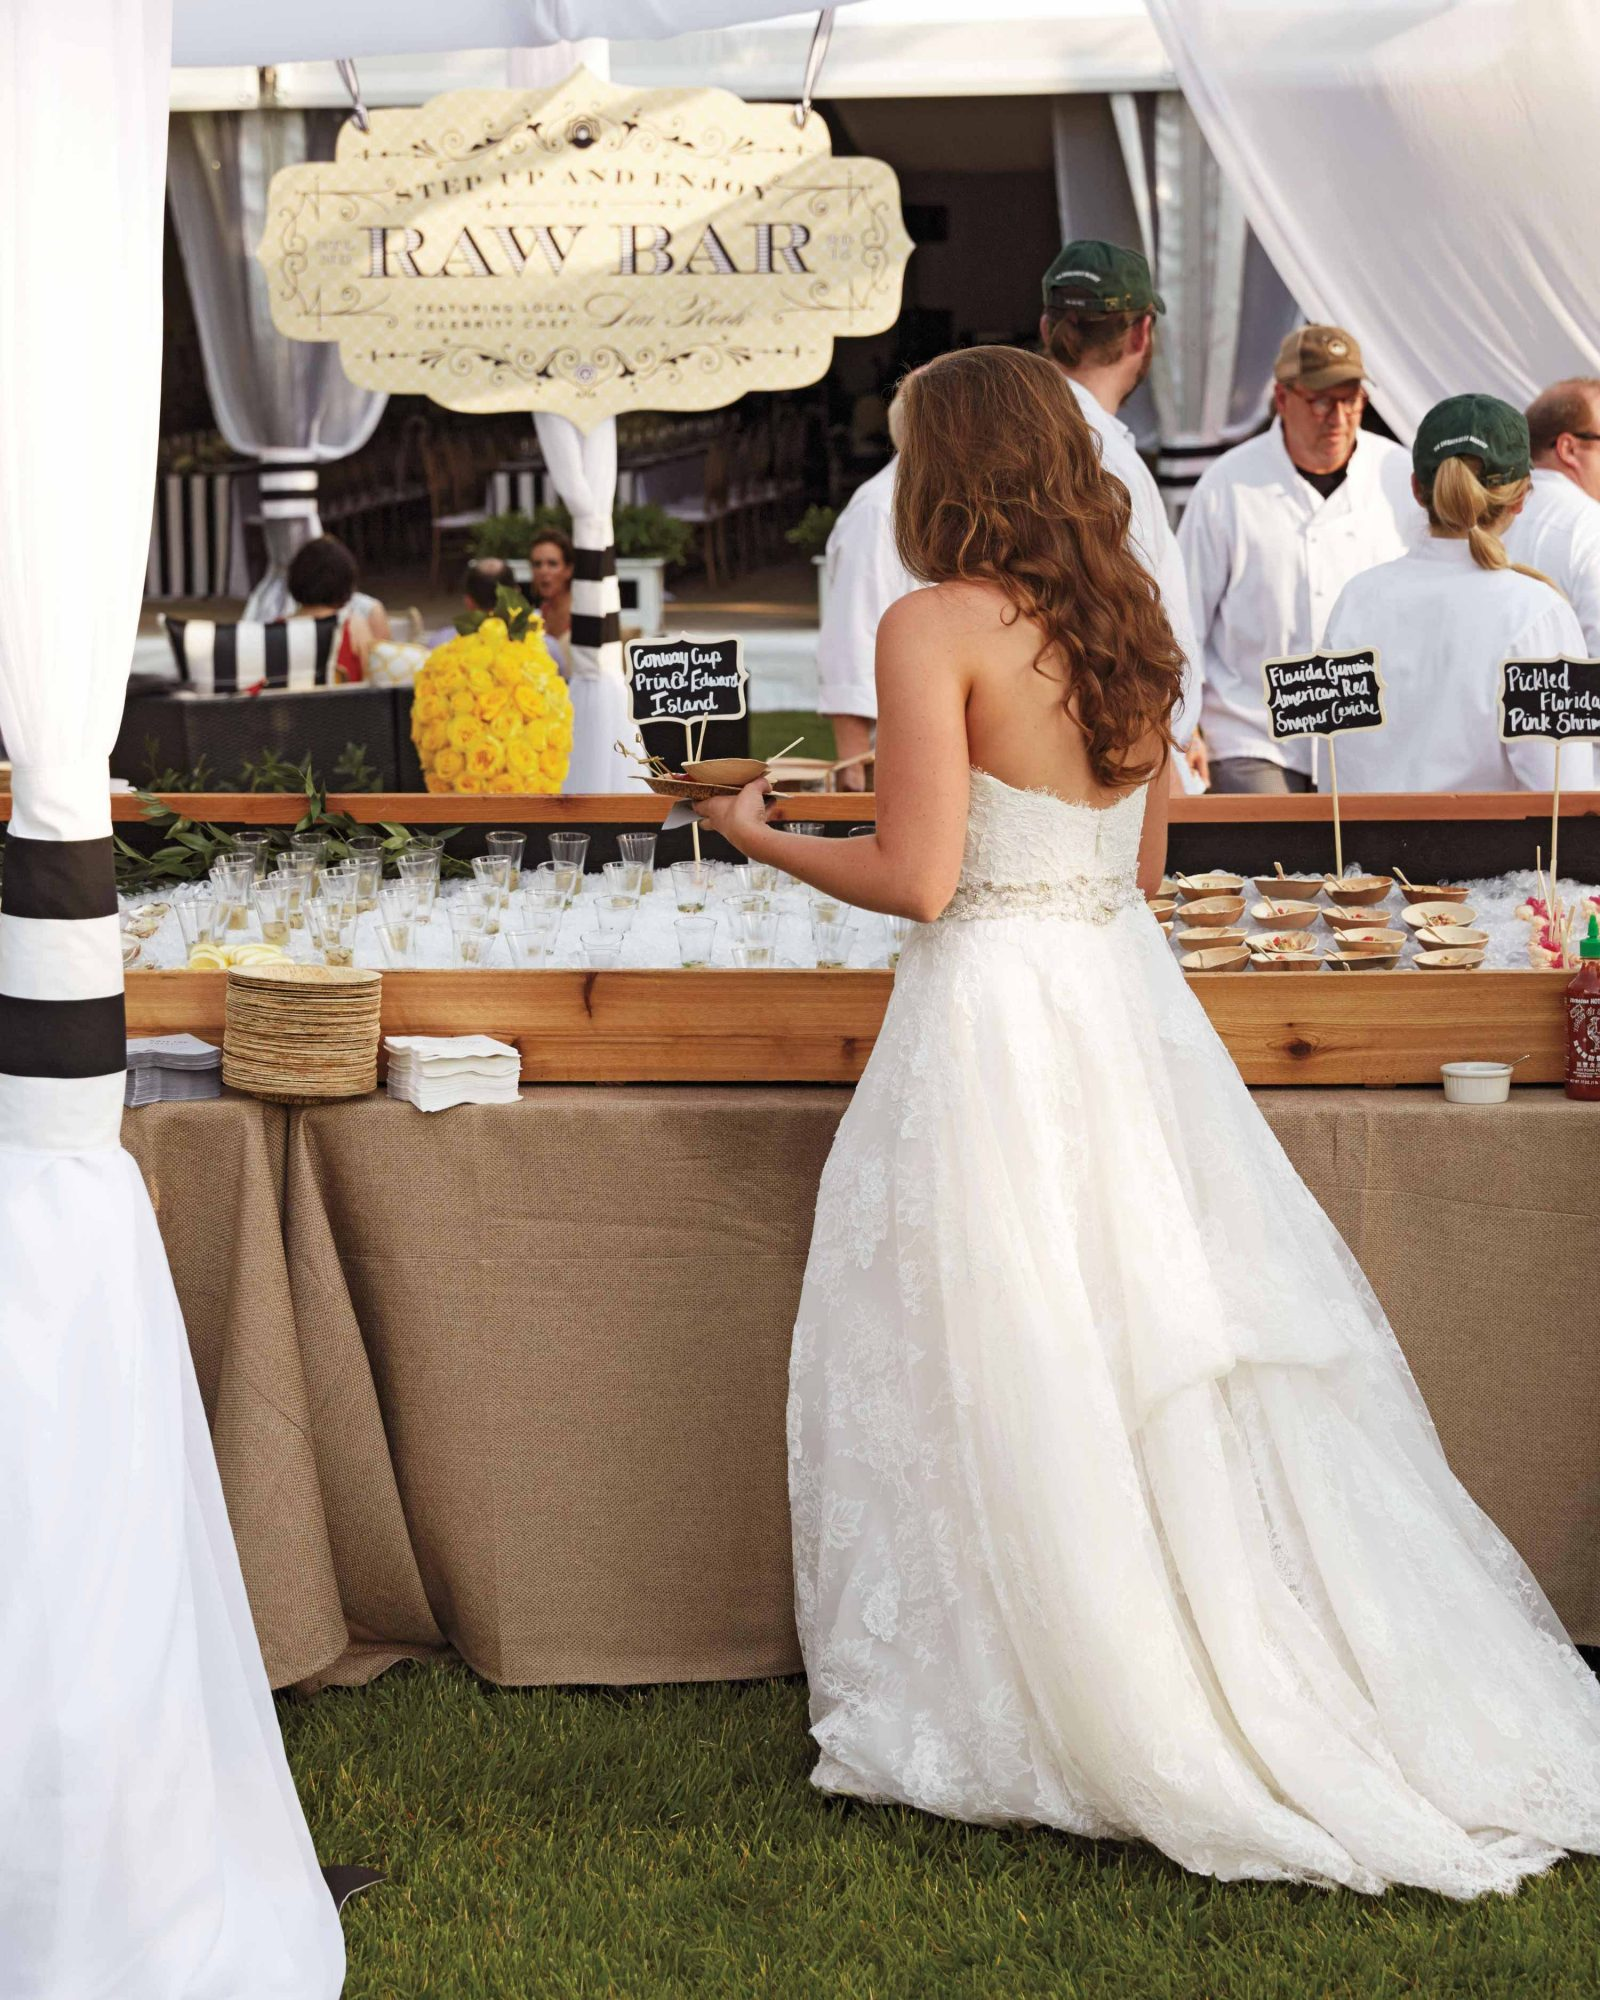 merin-ryan-real-wedding-seafood-raw-bar.jpg